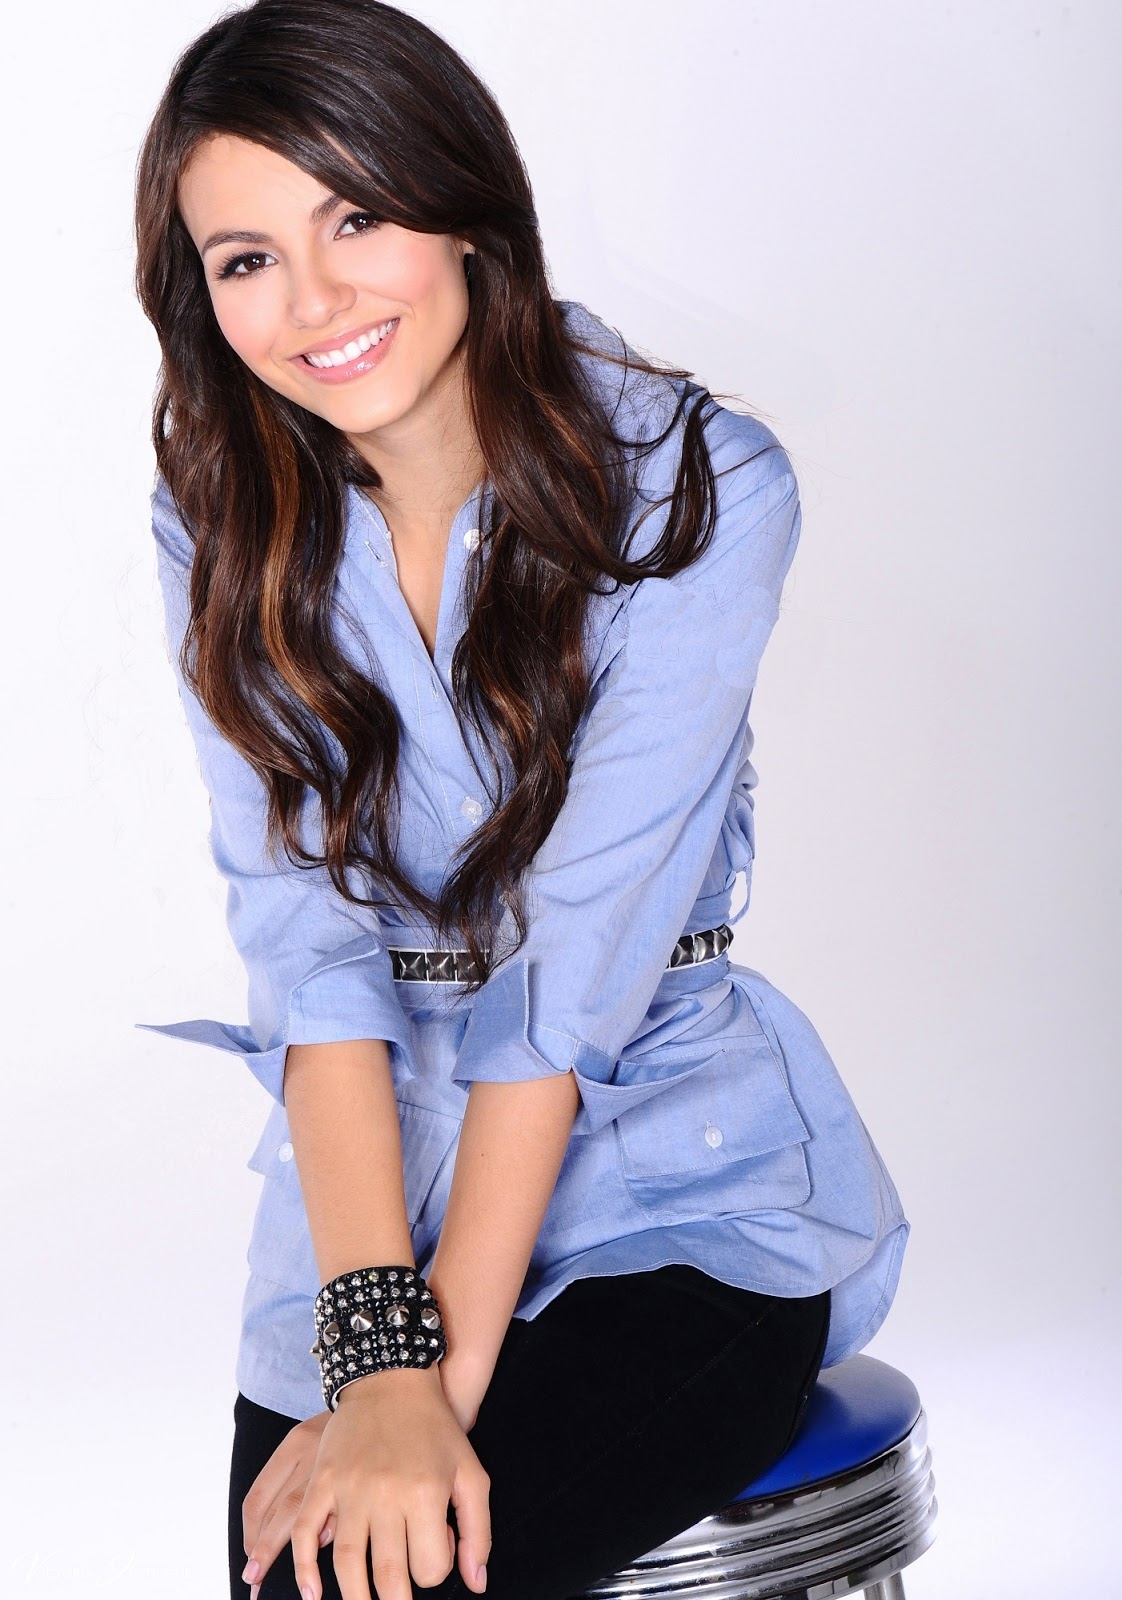 Victoria Justice Photoshoot For Nickelodeon